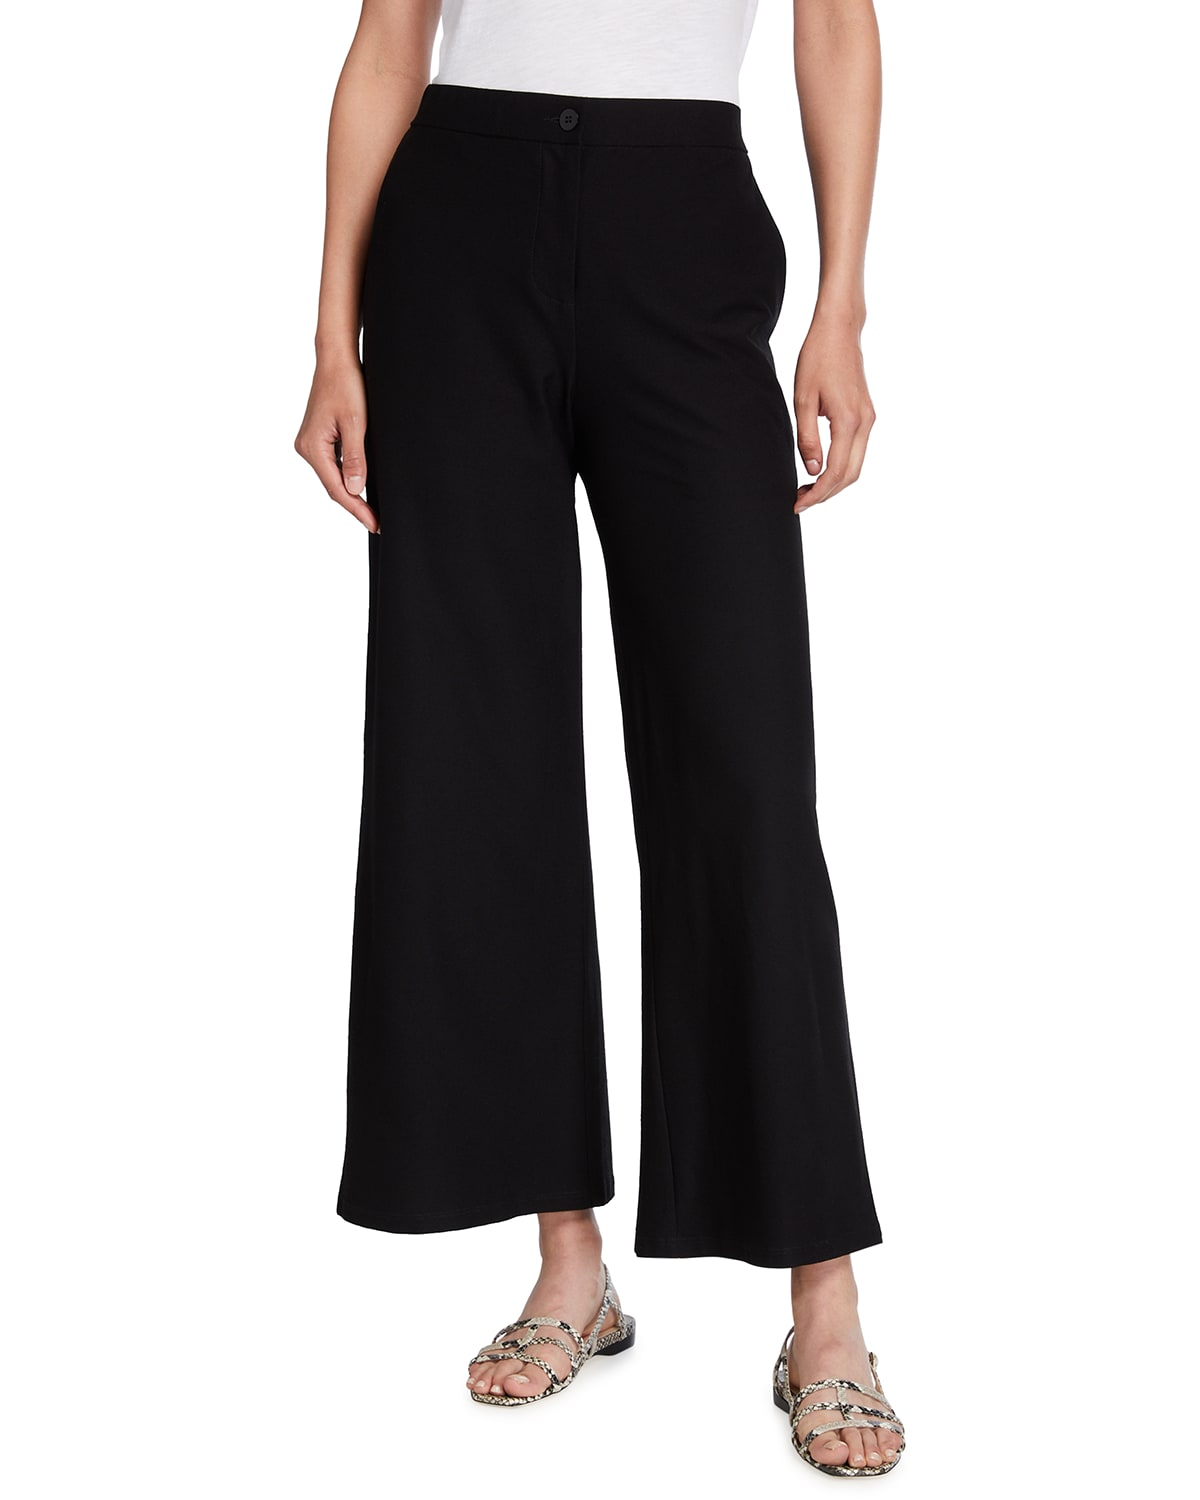 Stretch Crepe High-Waist Ankle Pants